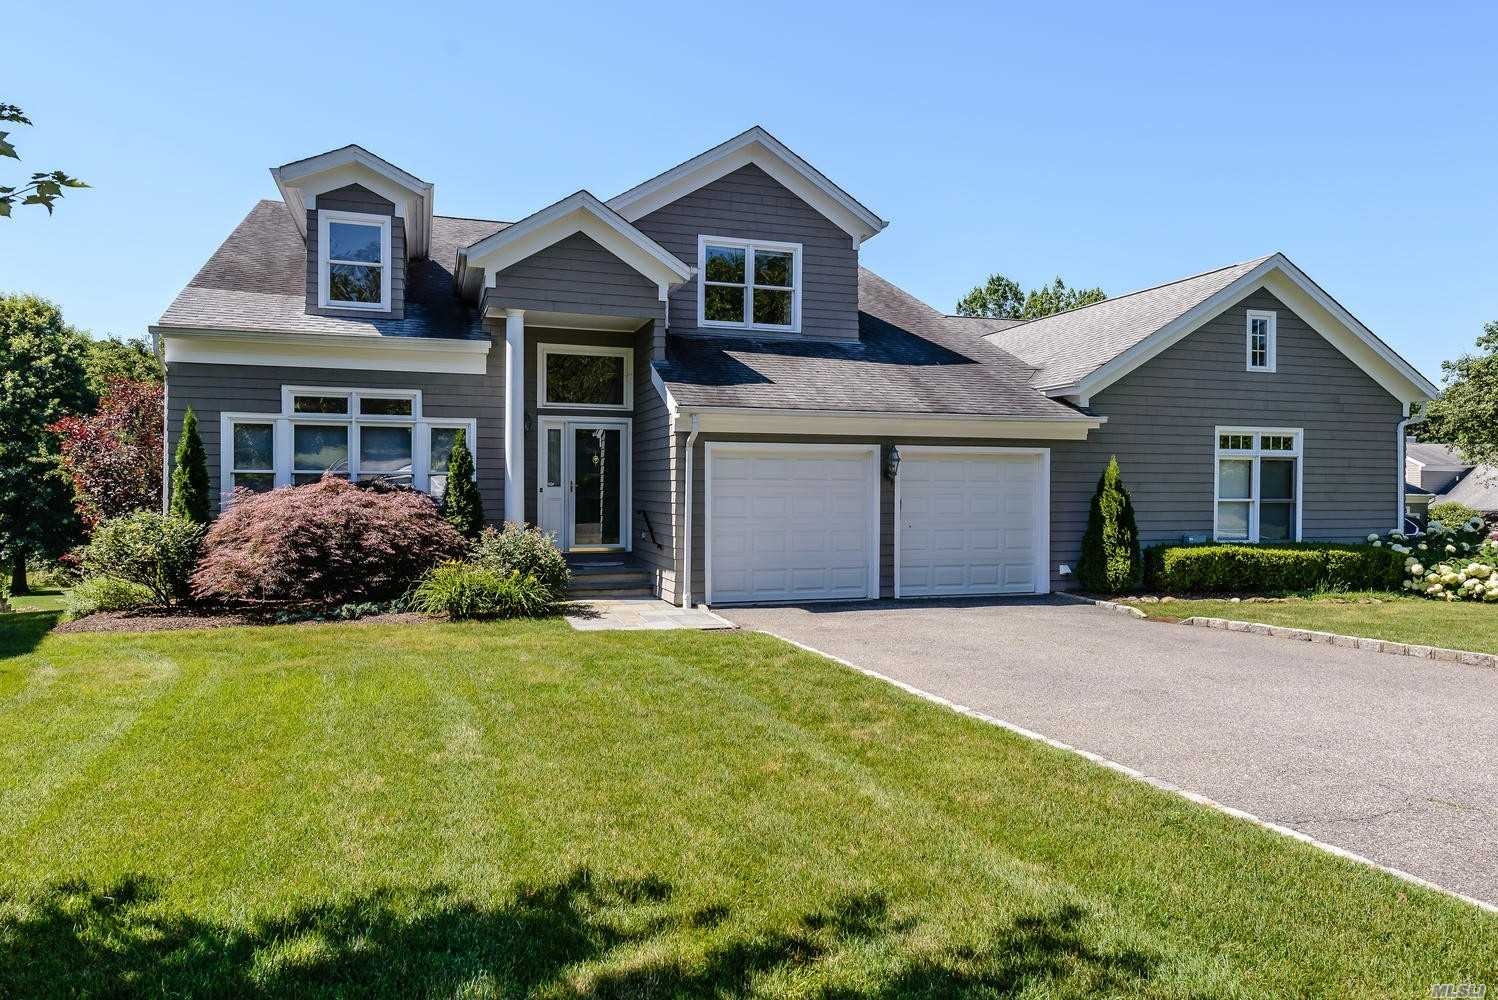 Beautiful Arbor Model/Main Floor Master Suite. Extended Fam Rm And Eik, Oversized Trex Deck. Walkout Fin Lower Level (Bedroom And Bth) New Master Bath.